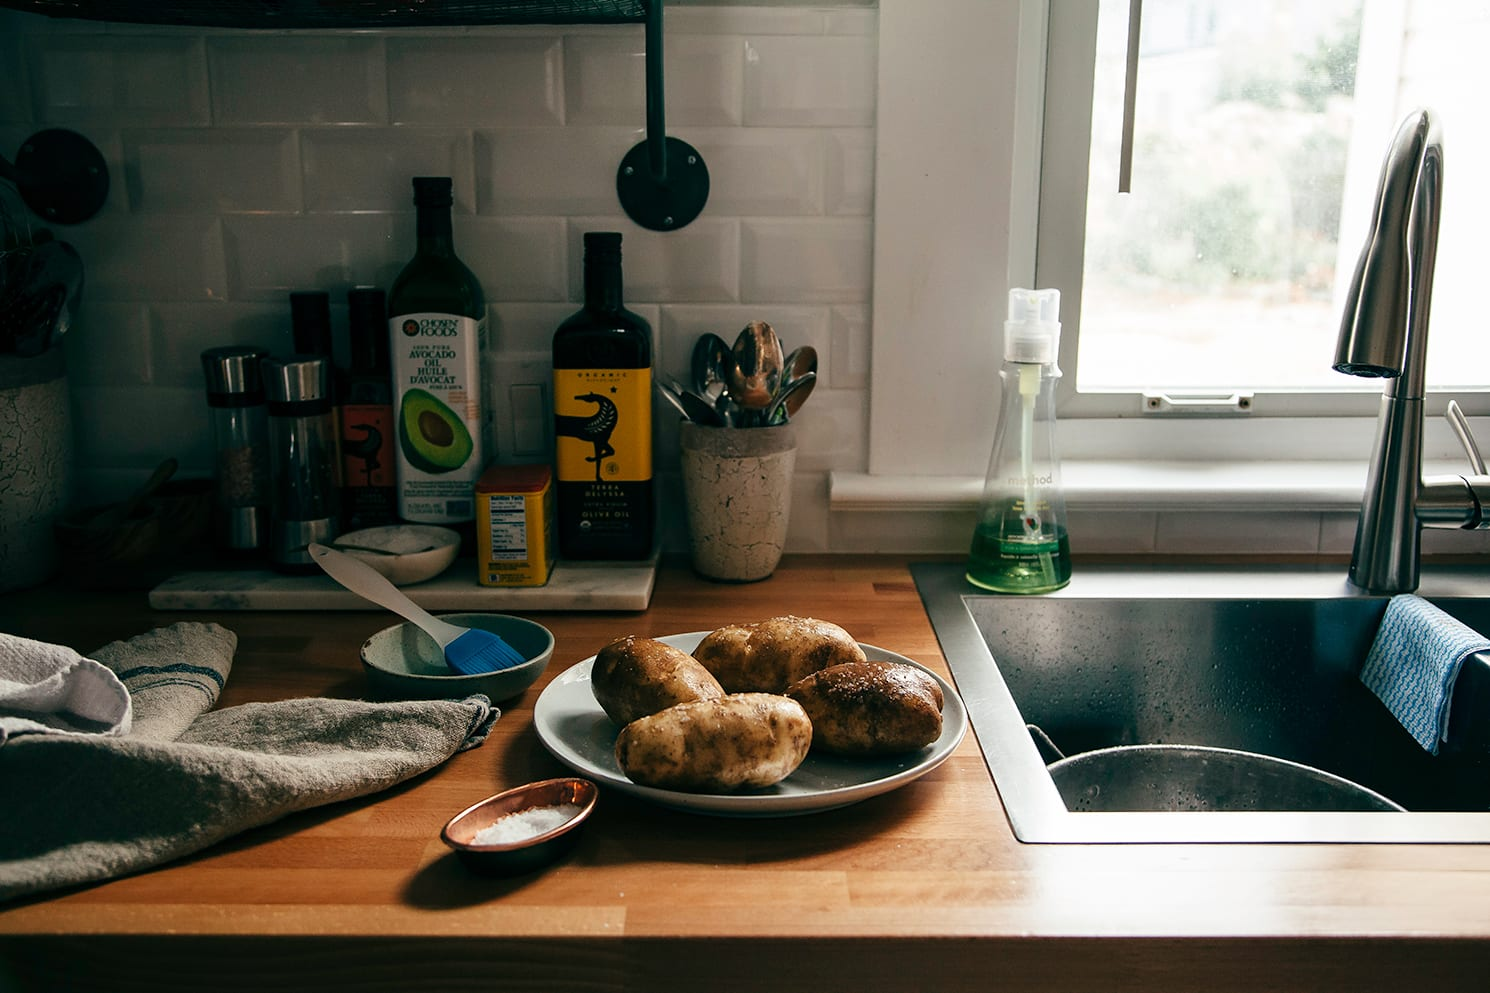 Image shows baking potatoes on a plate on top of a kitchen counter. They are topped with coarse salt.